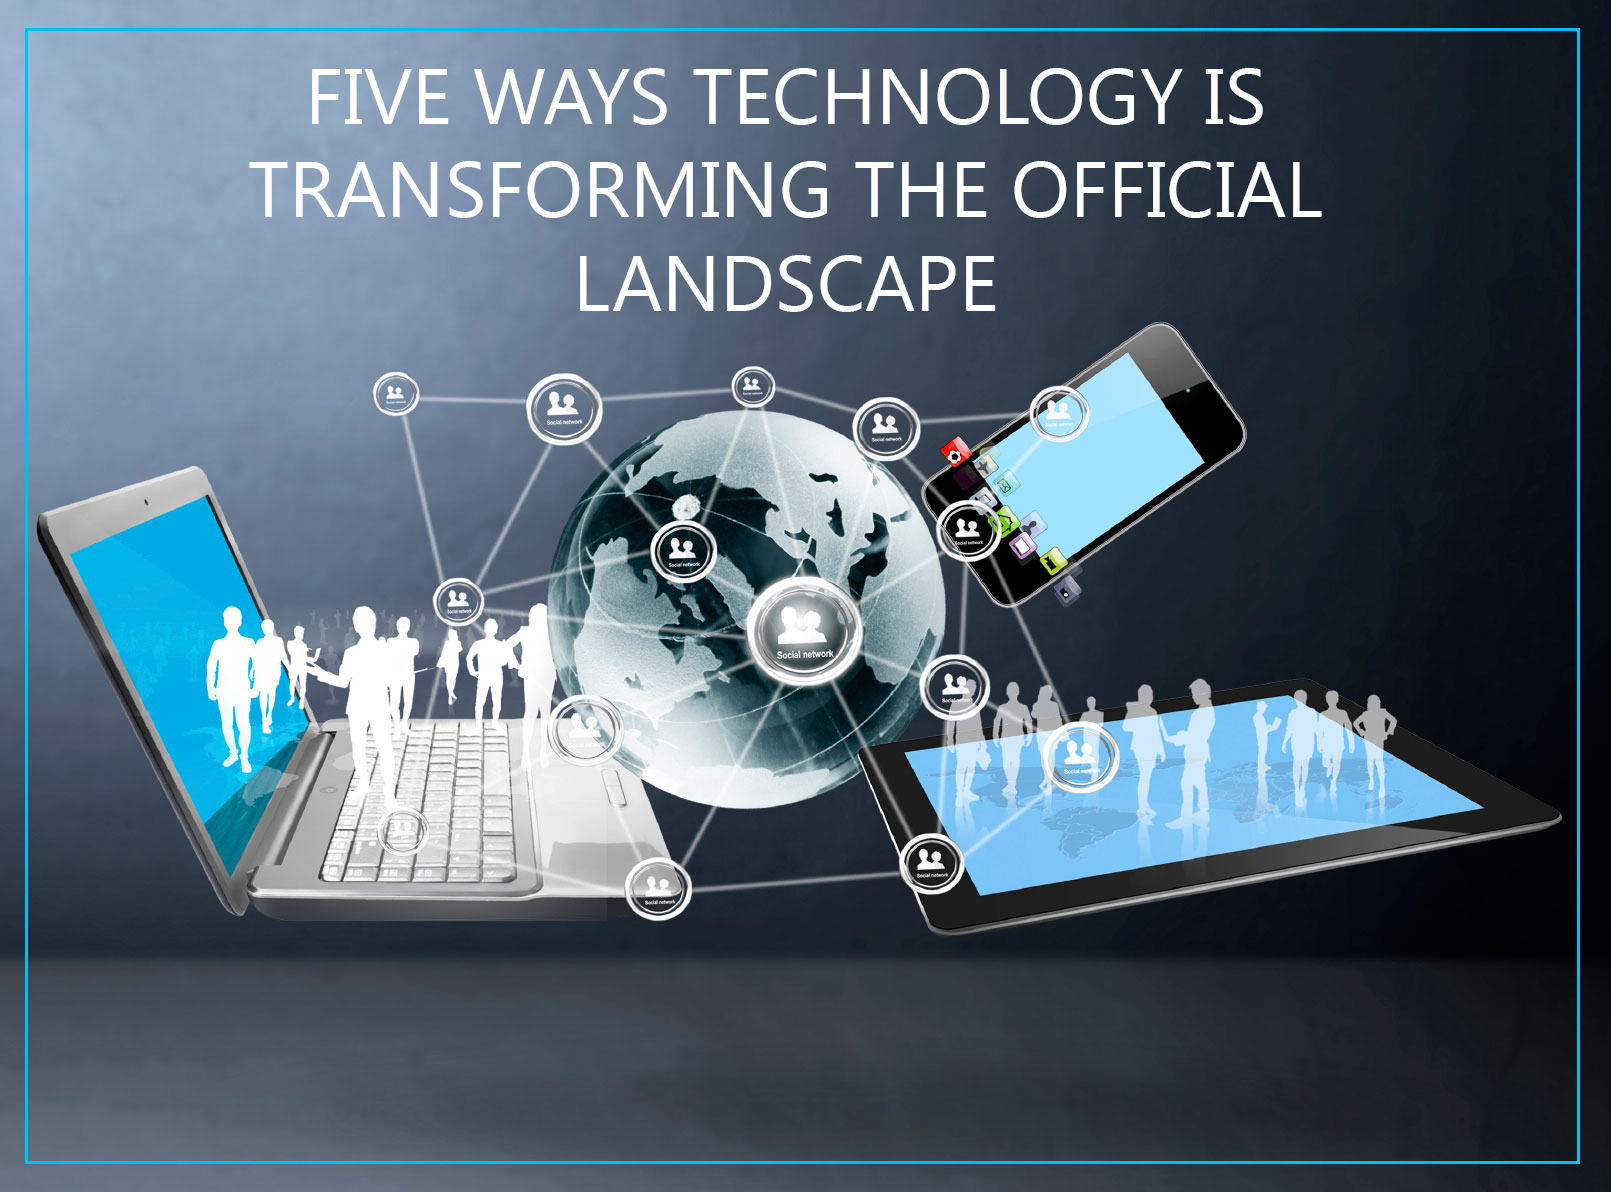 Five Ways Technology is Transforming the Official Landscape